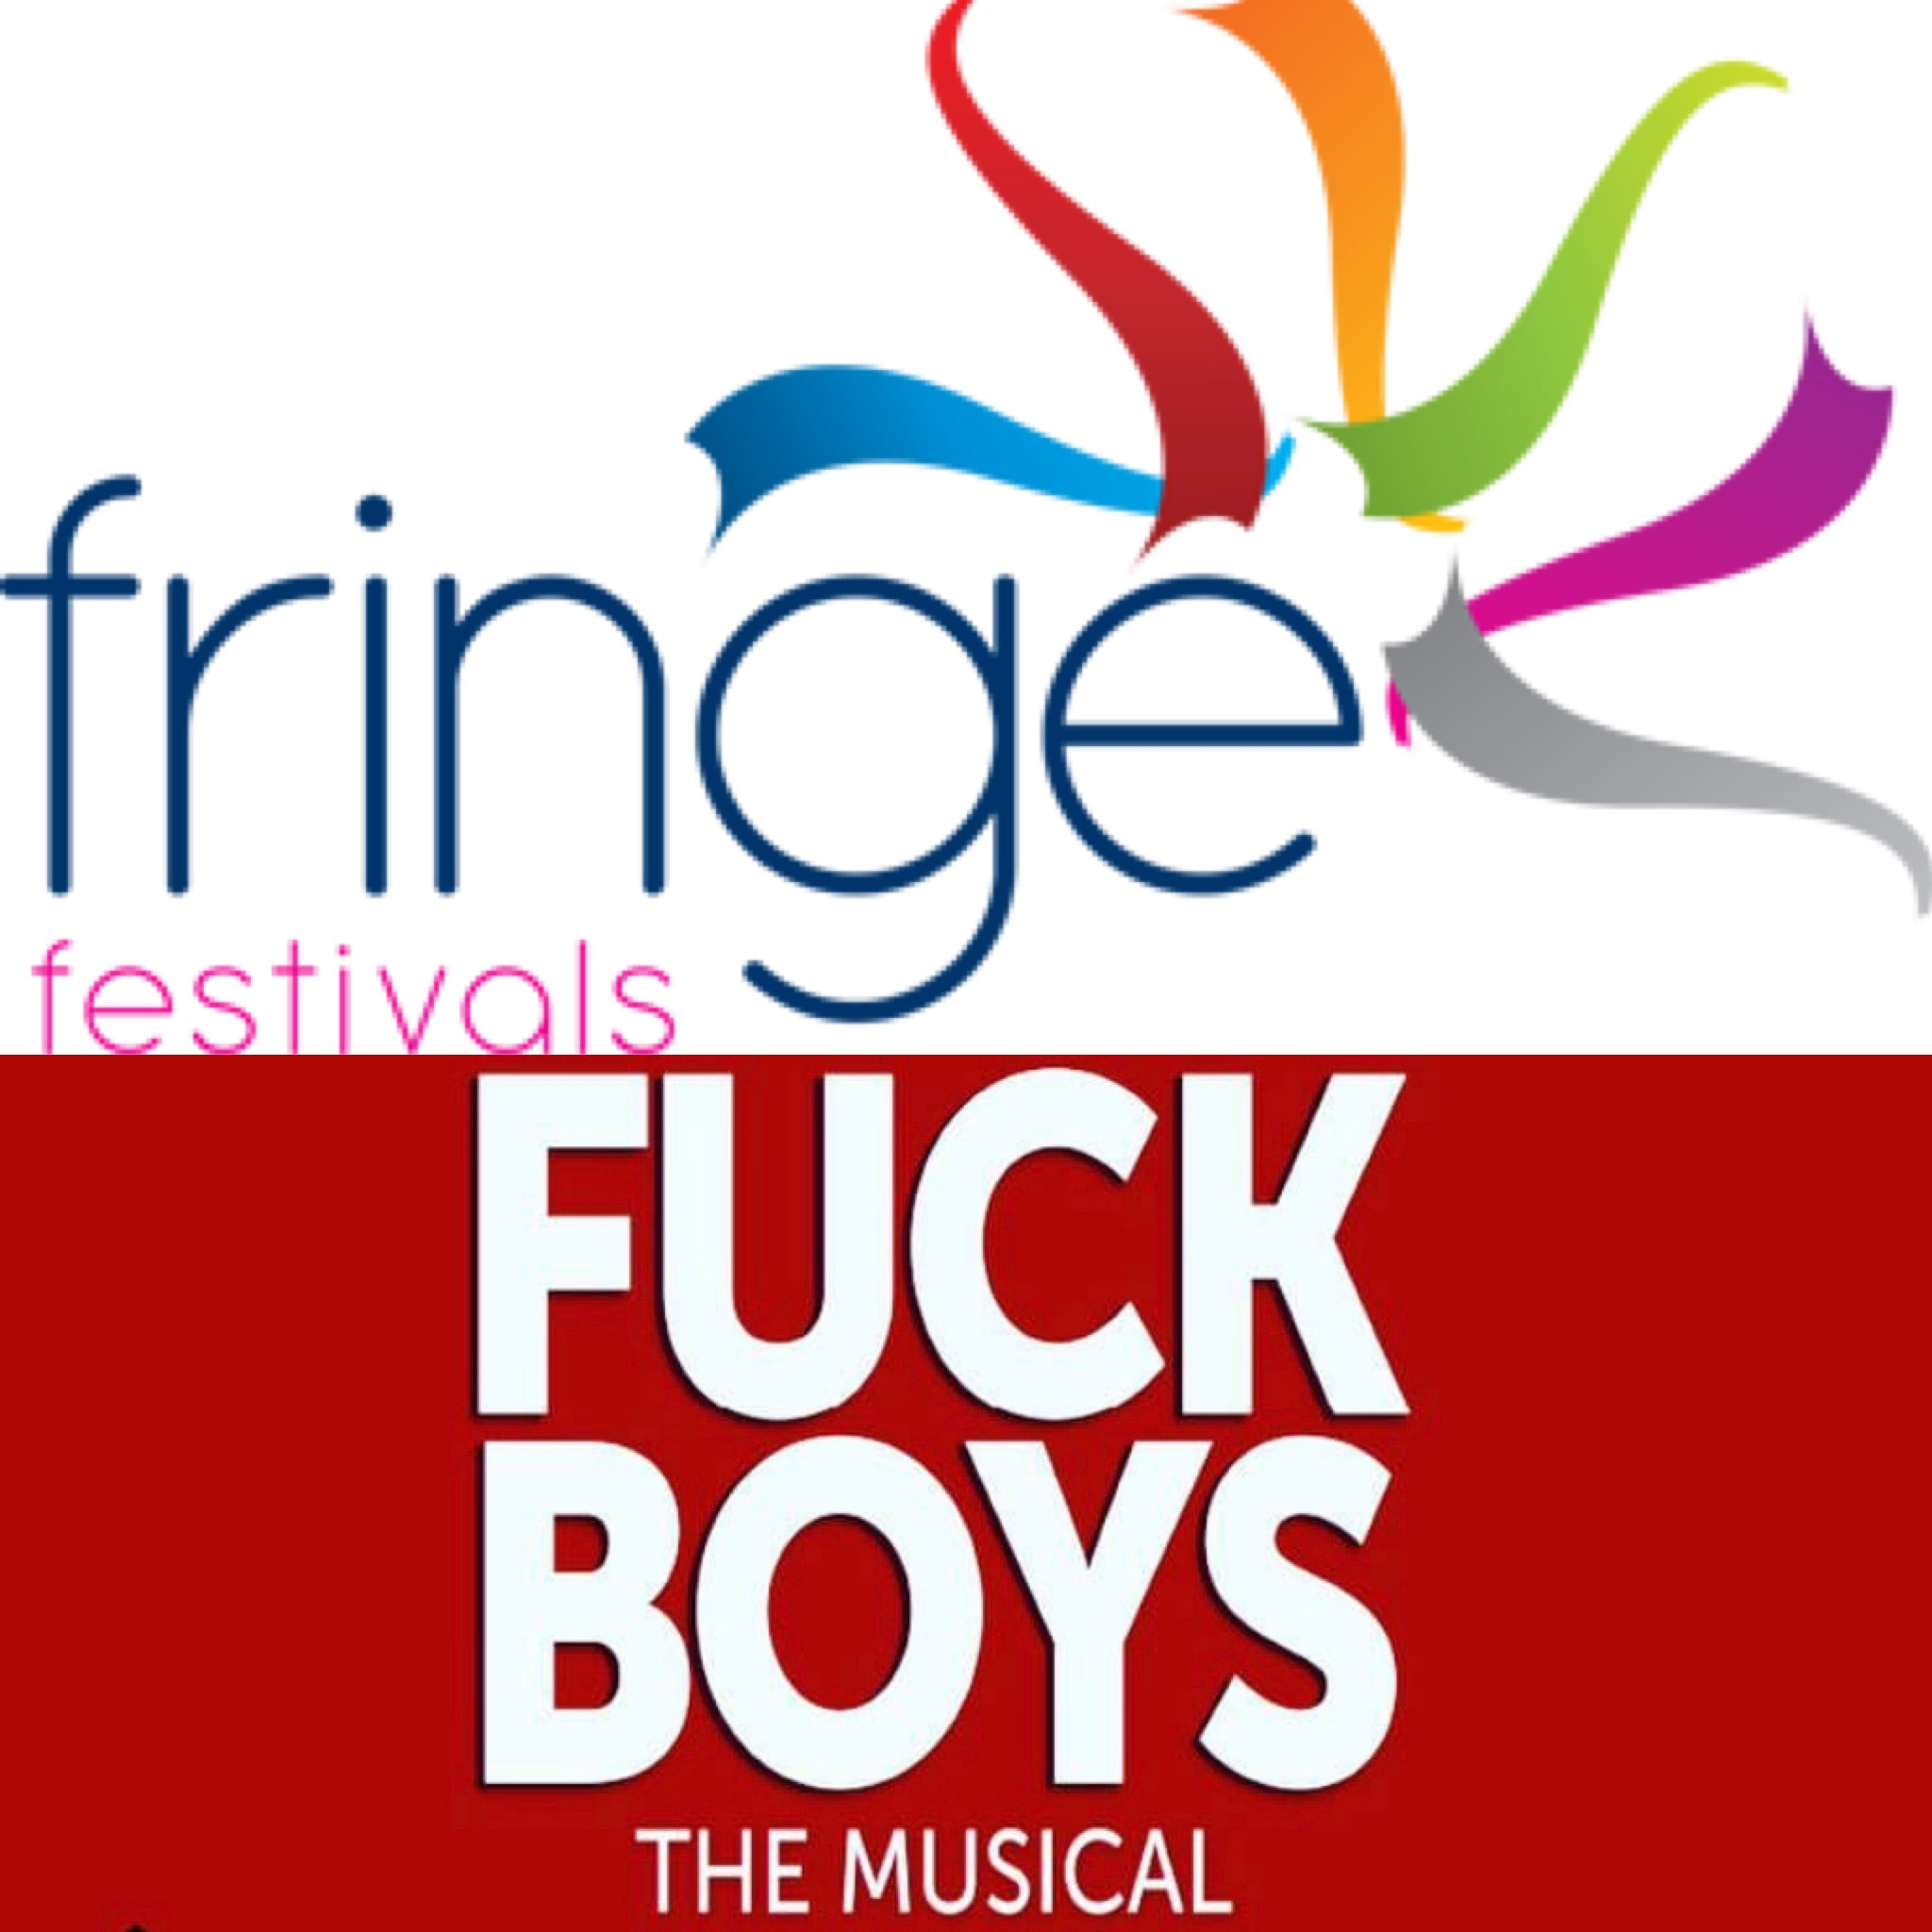 Canadian Fringe Festivals - Nicole has joined the cast of Fuckboys The Musical that will be touring multiple Canadian Fringe Festivals (Windsor, London, Ottawa, Toronto, and Hamilton) from May 22nd- July 28th.